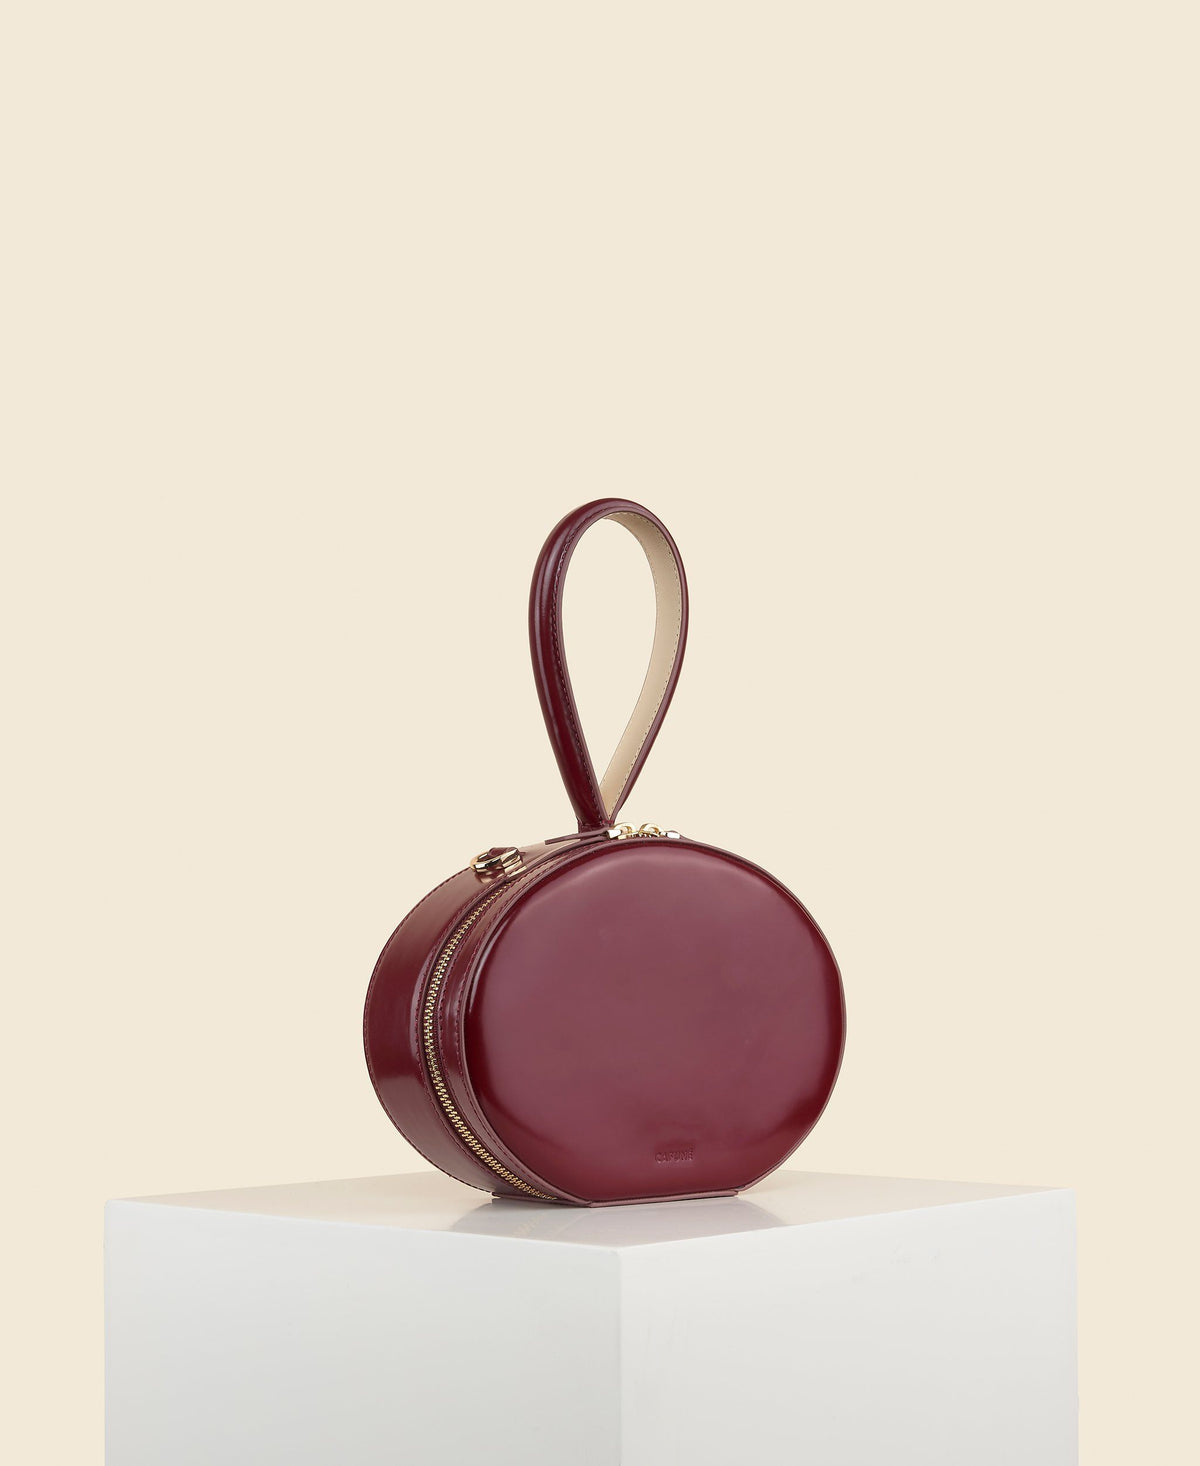 Cafuné Egg Bag in Merlot